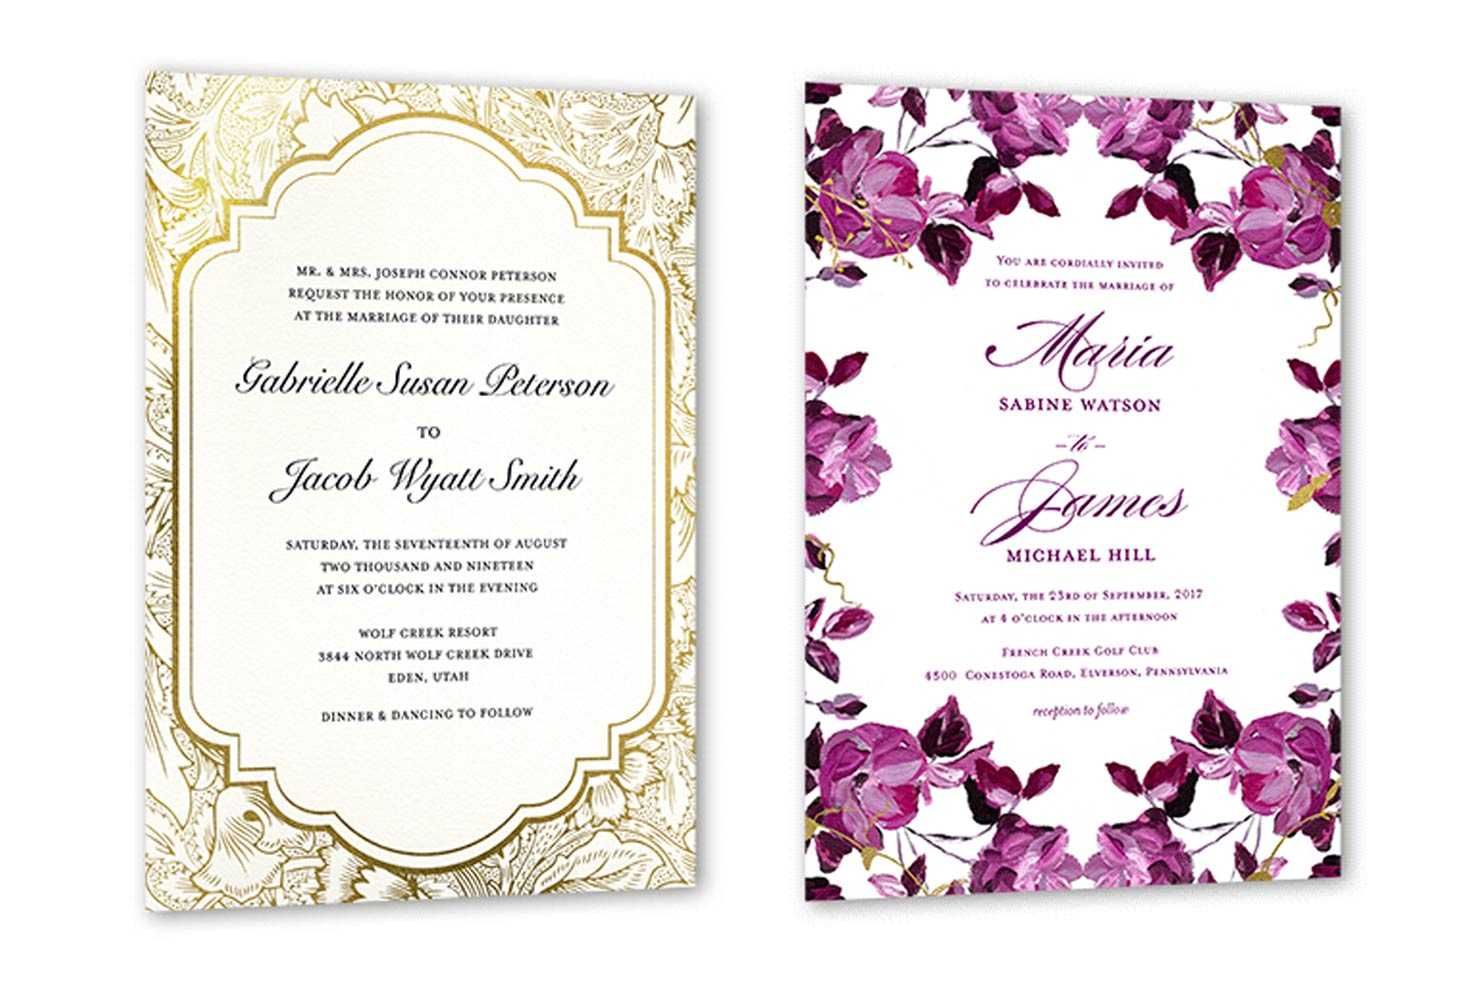 35+ Wedding Invitation Wording Examples 2020 | Shutterfly Within Sample Wedding Invitation Cards Templates